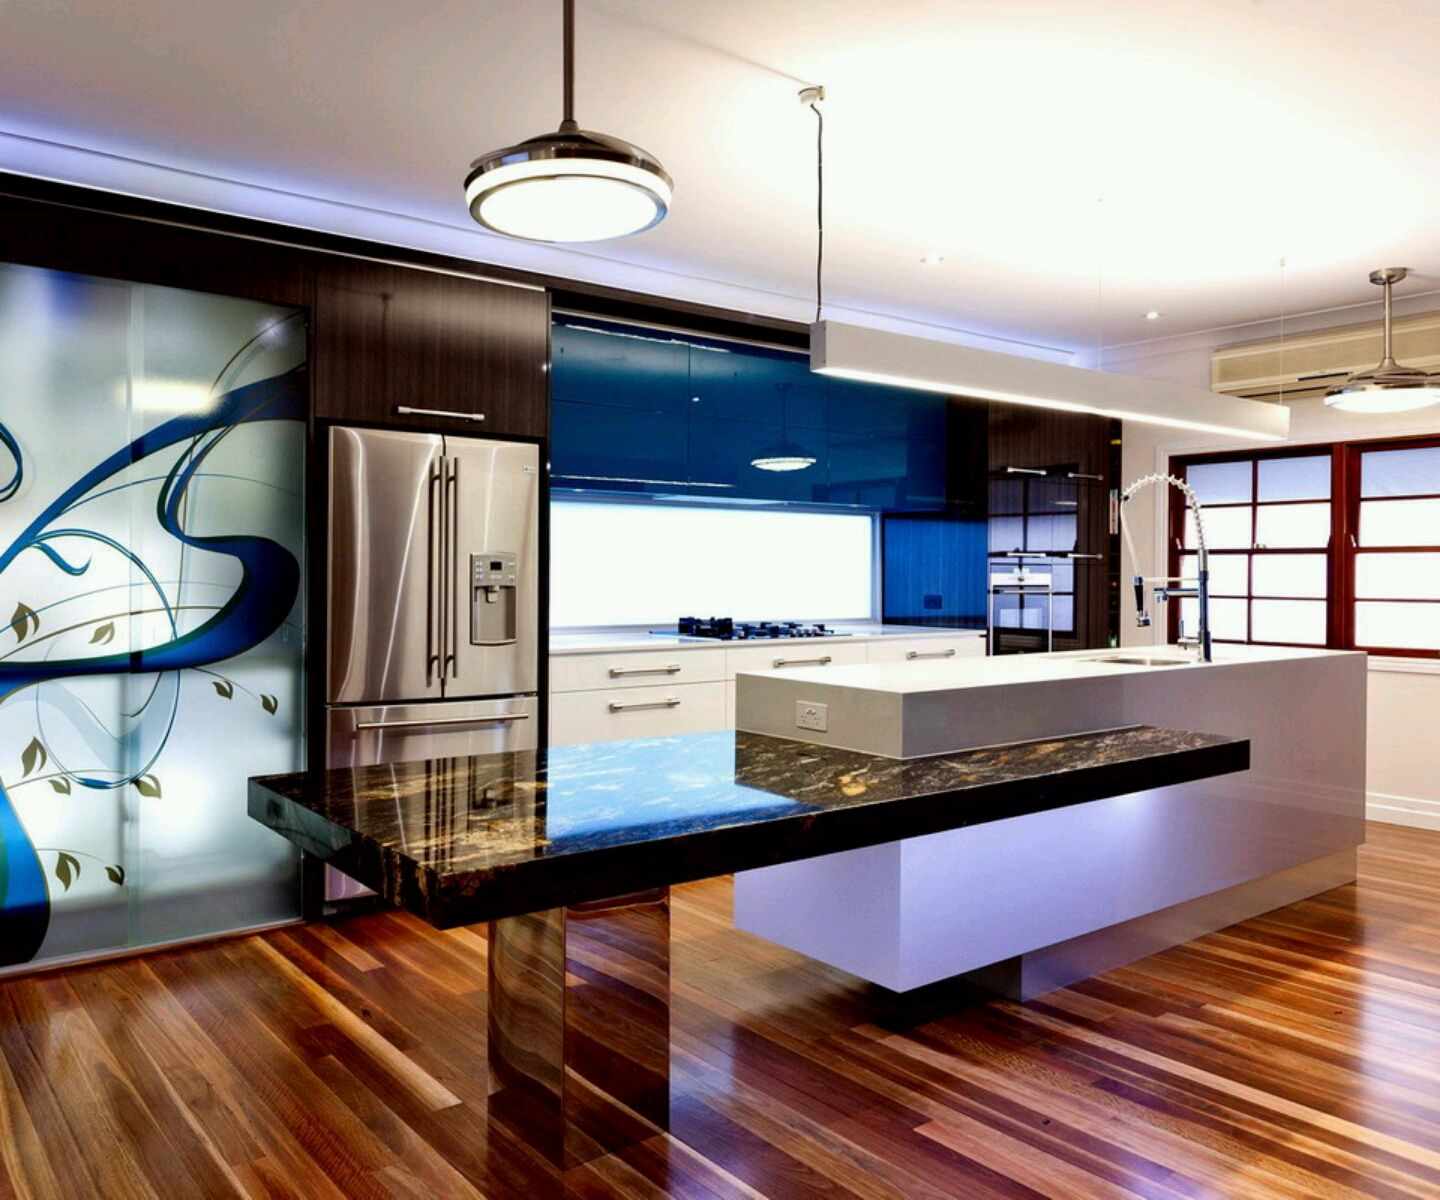 New Home Designs Latest Ultra Modern Kitchen Designs Ideas: New Home Design Ideas: Ultra Modern Kitchen Designs Ideas